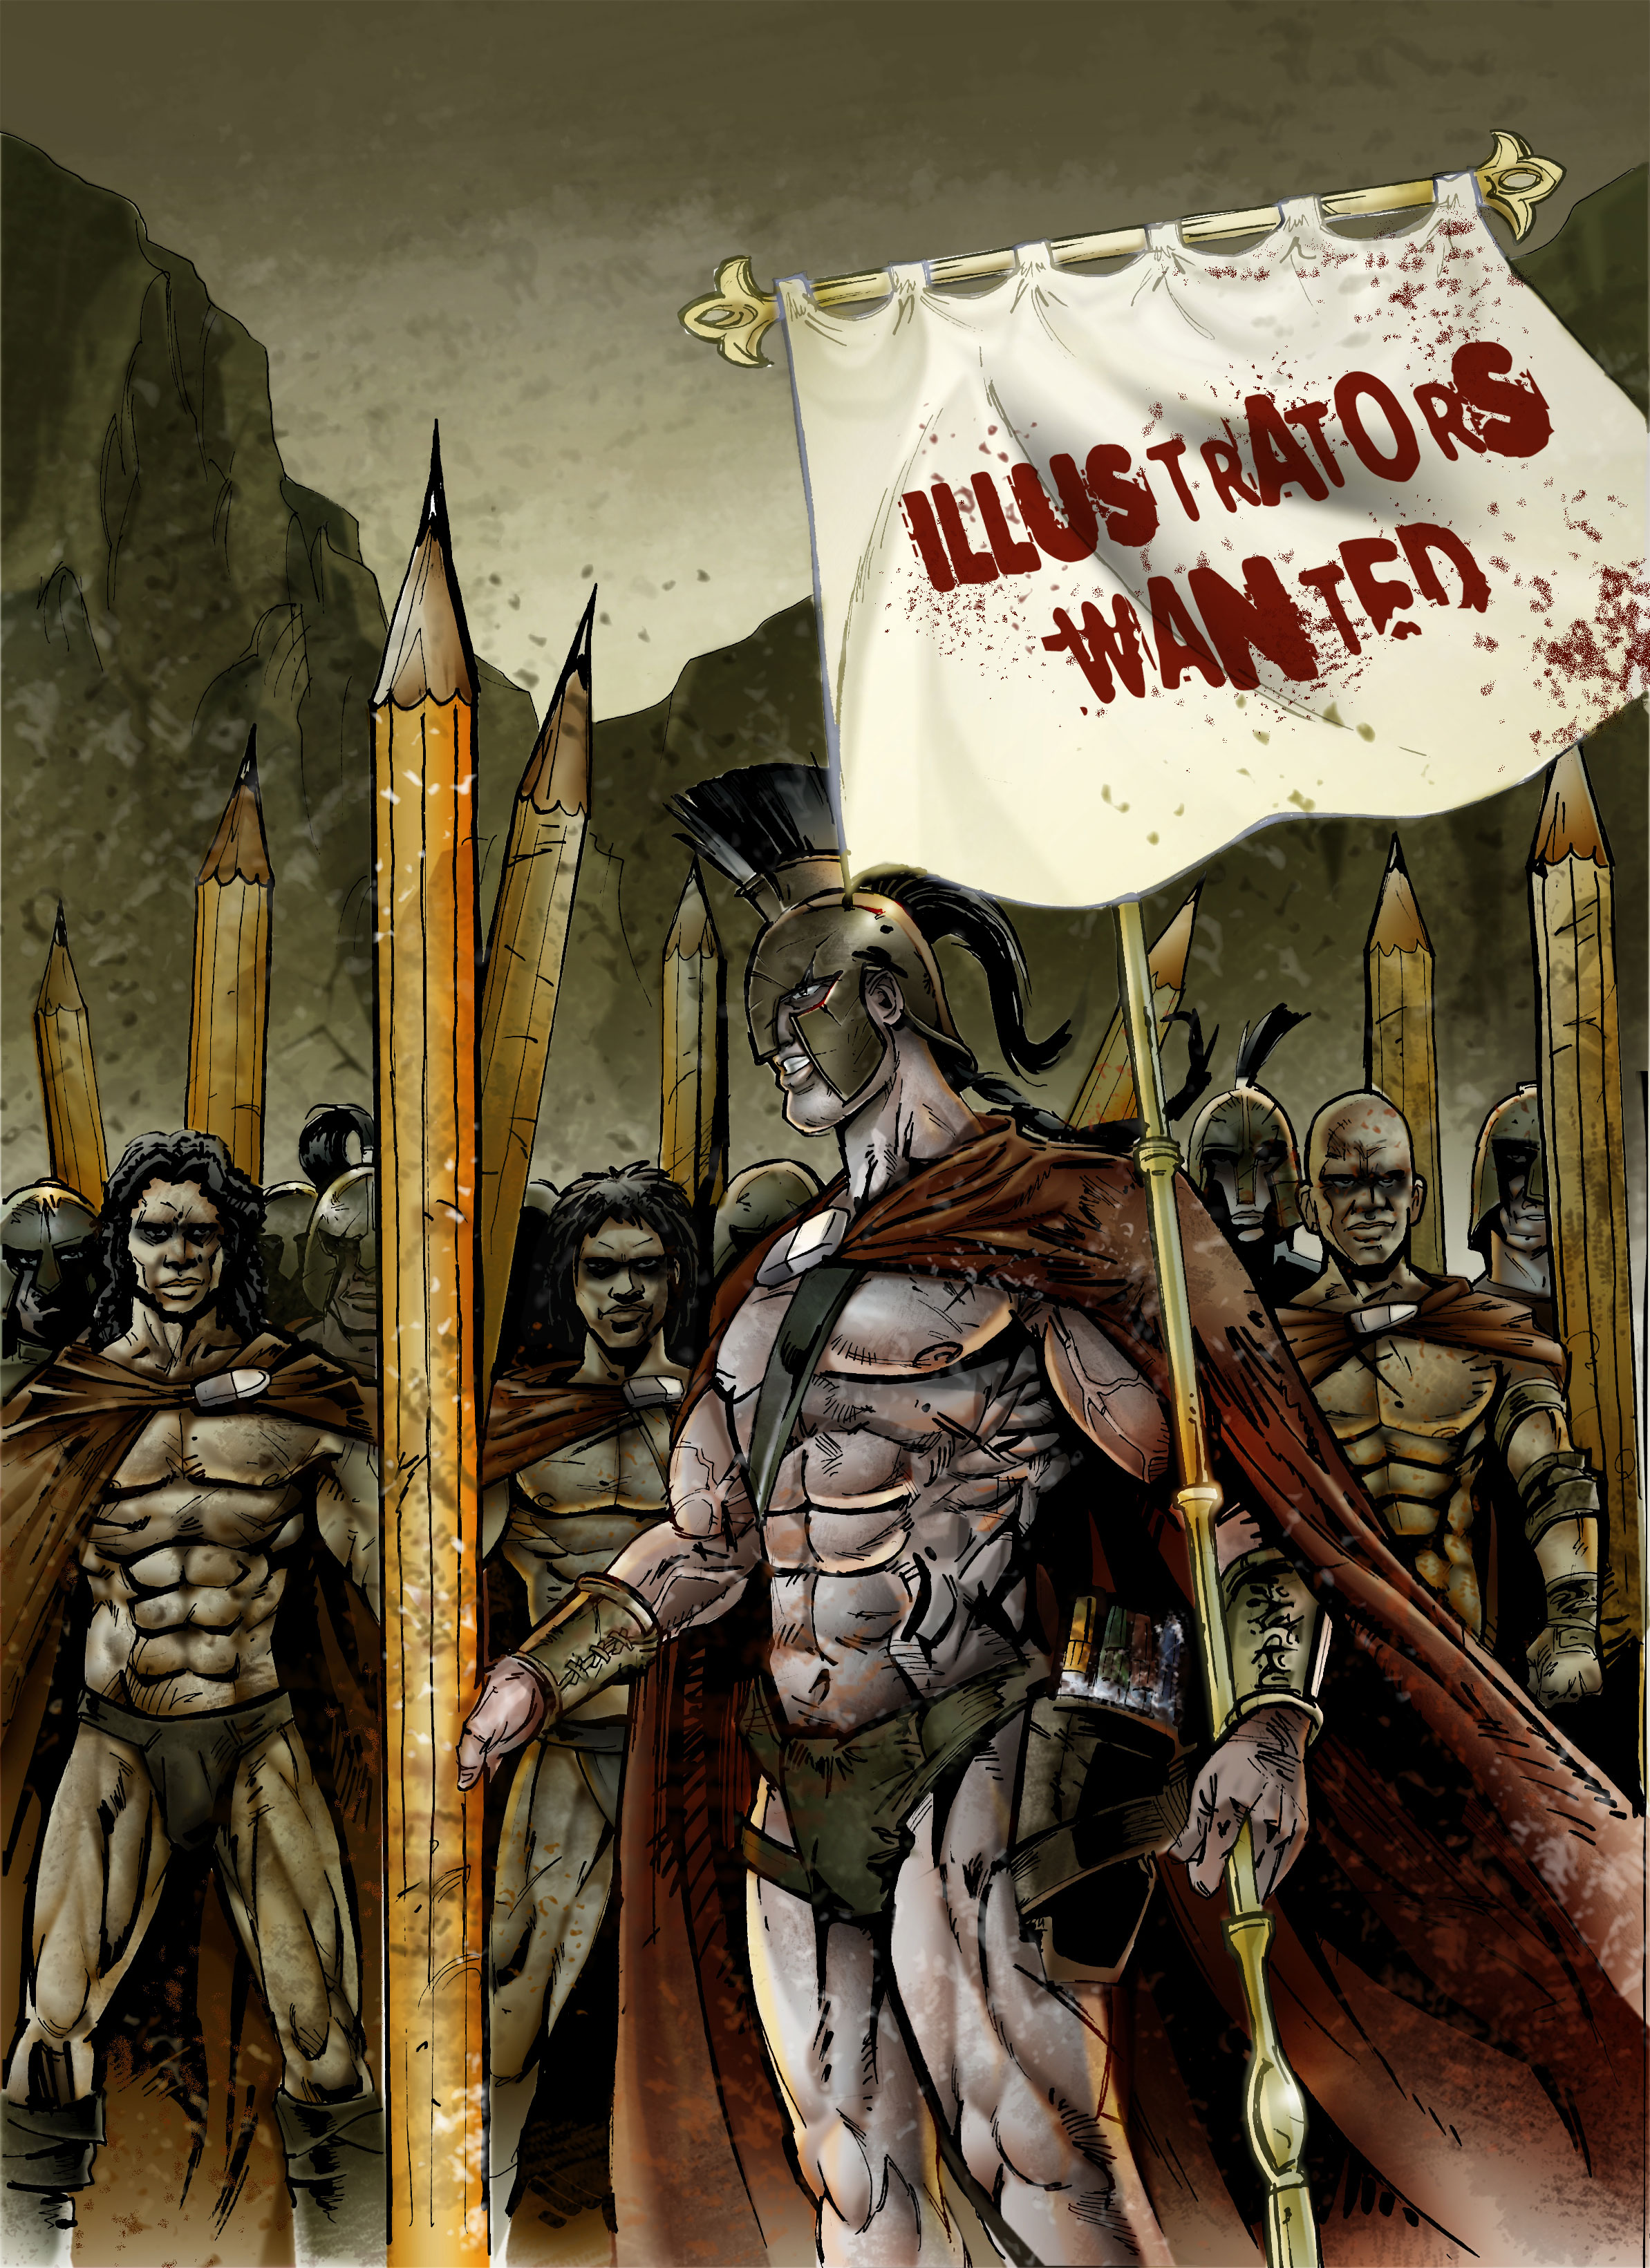 Illustrators wanted Poster